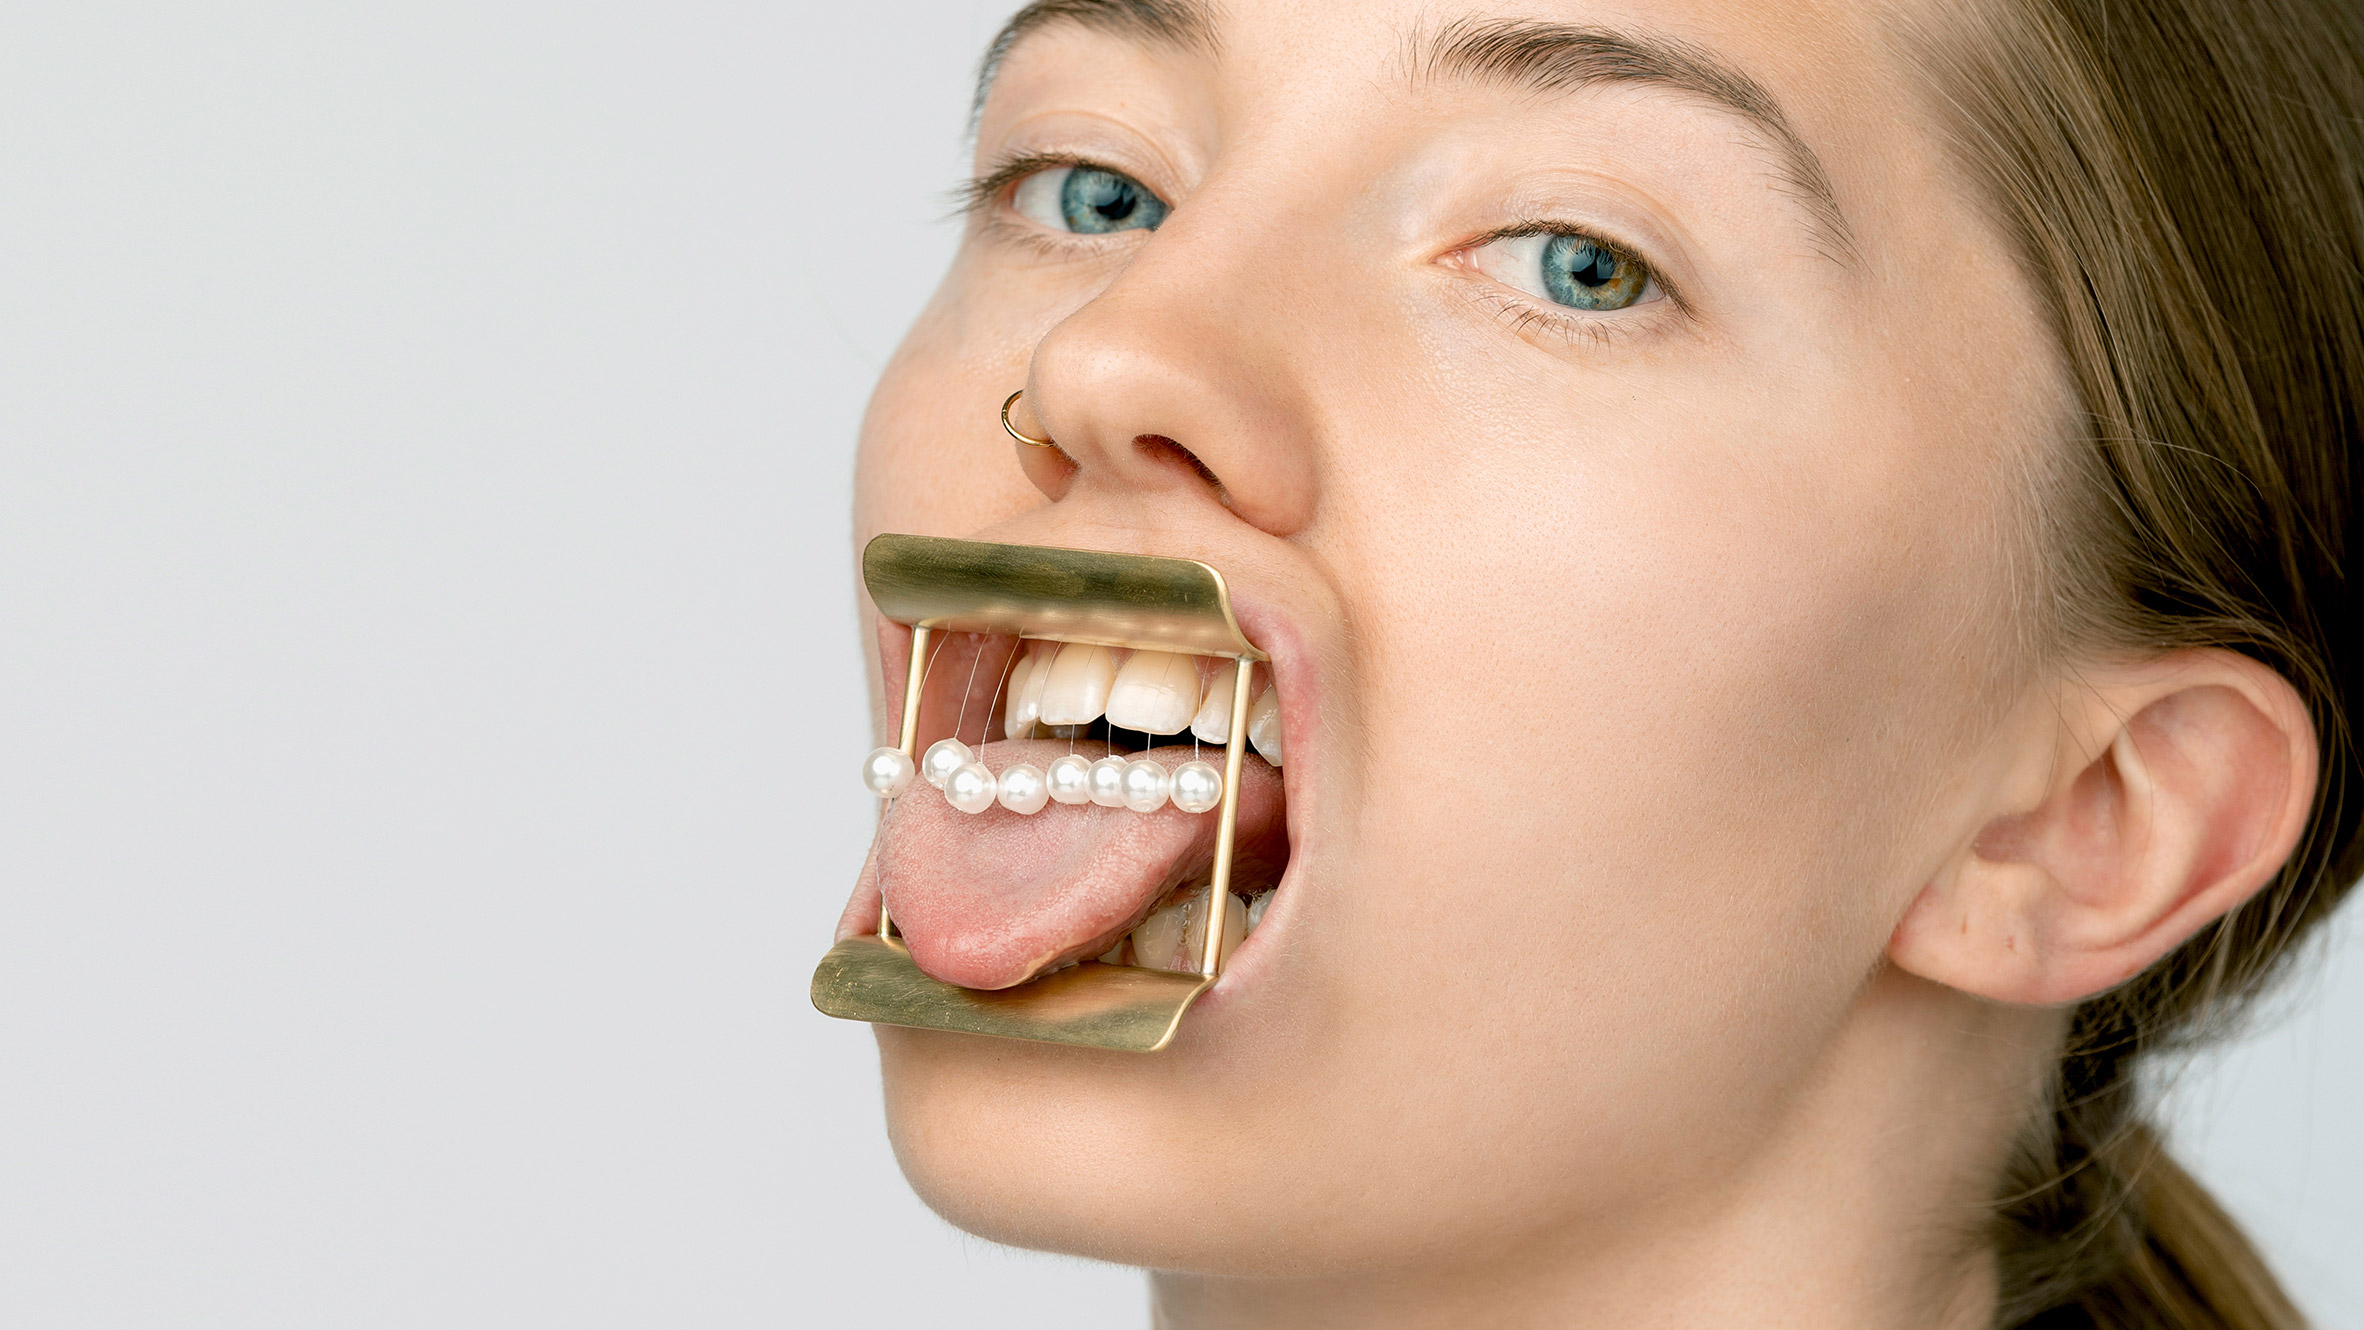 Collections from Lucerne students stretch the meaning of jewellery